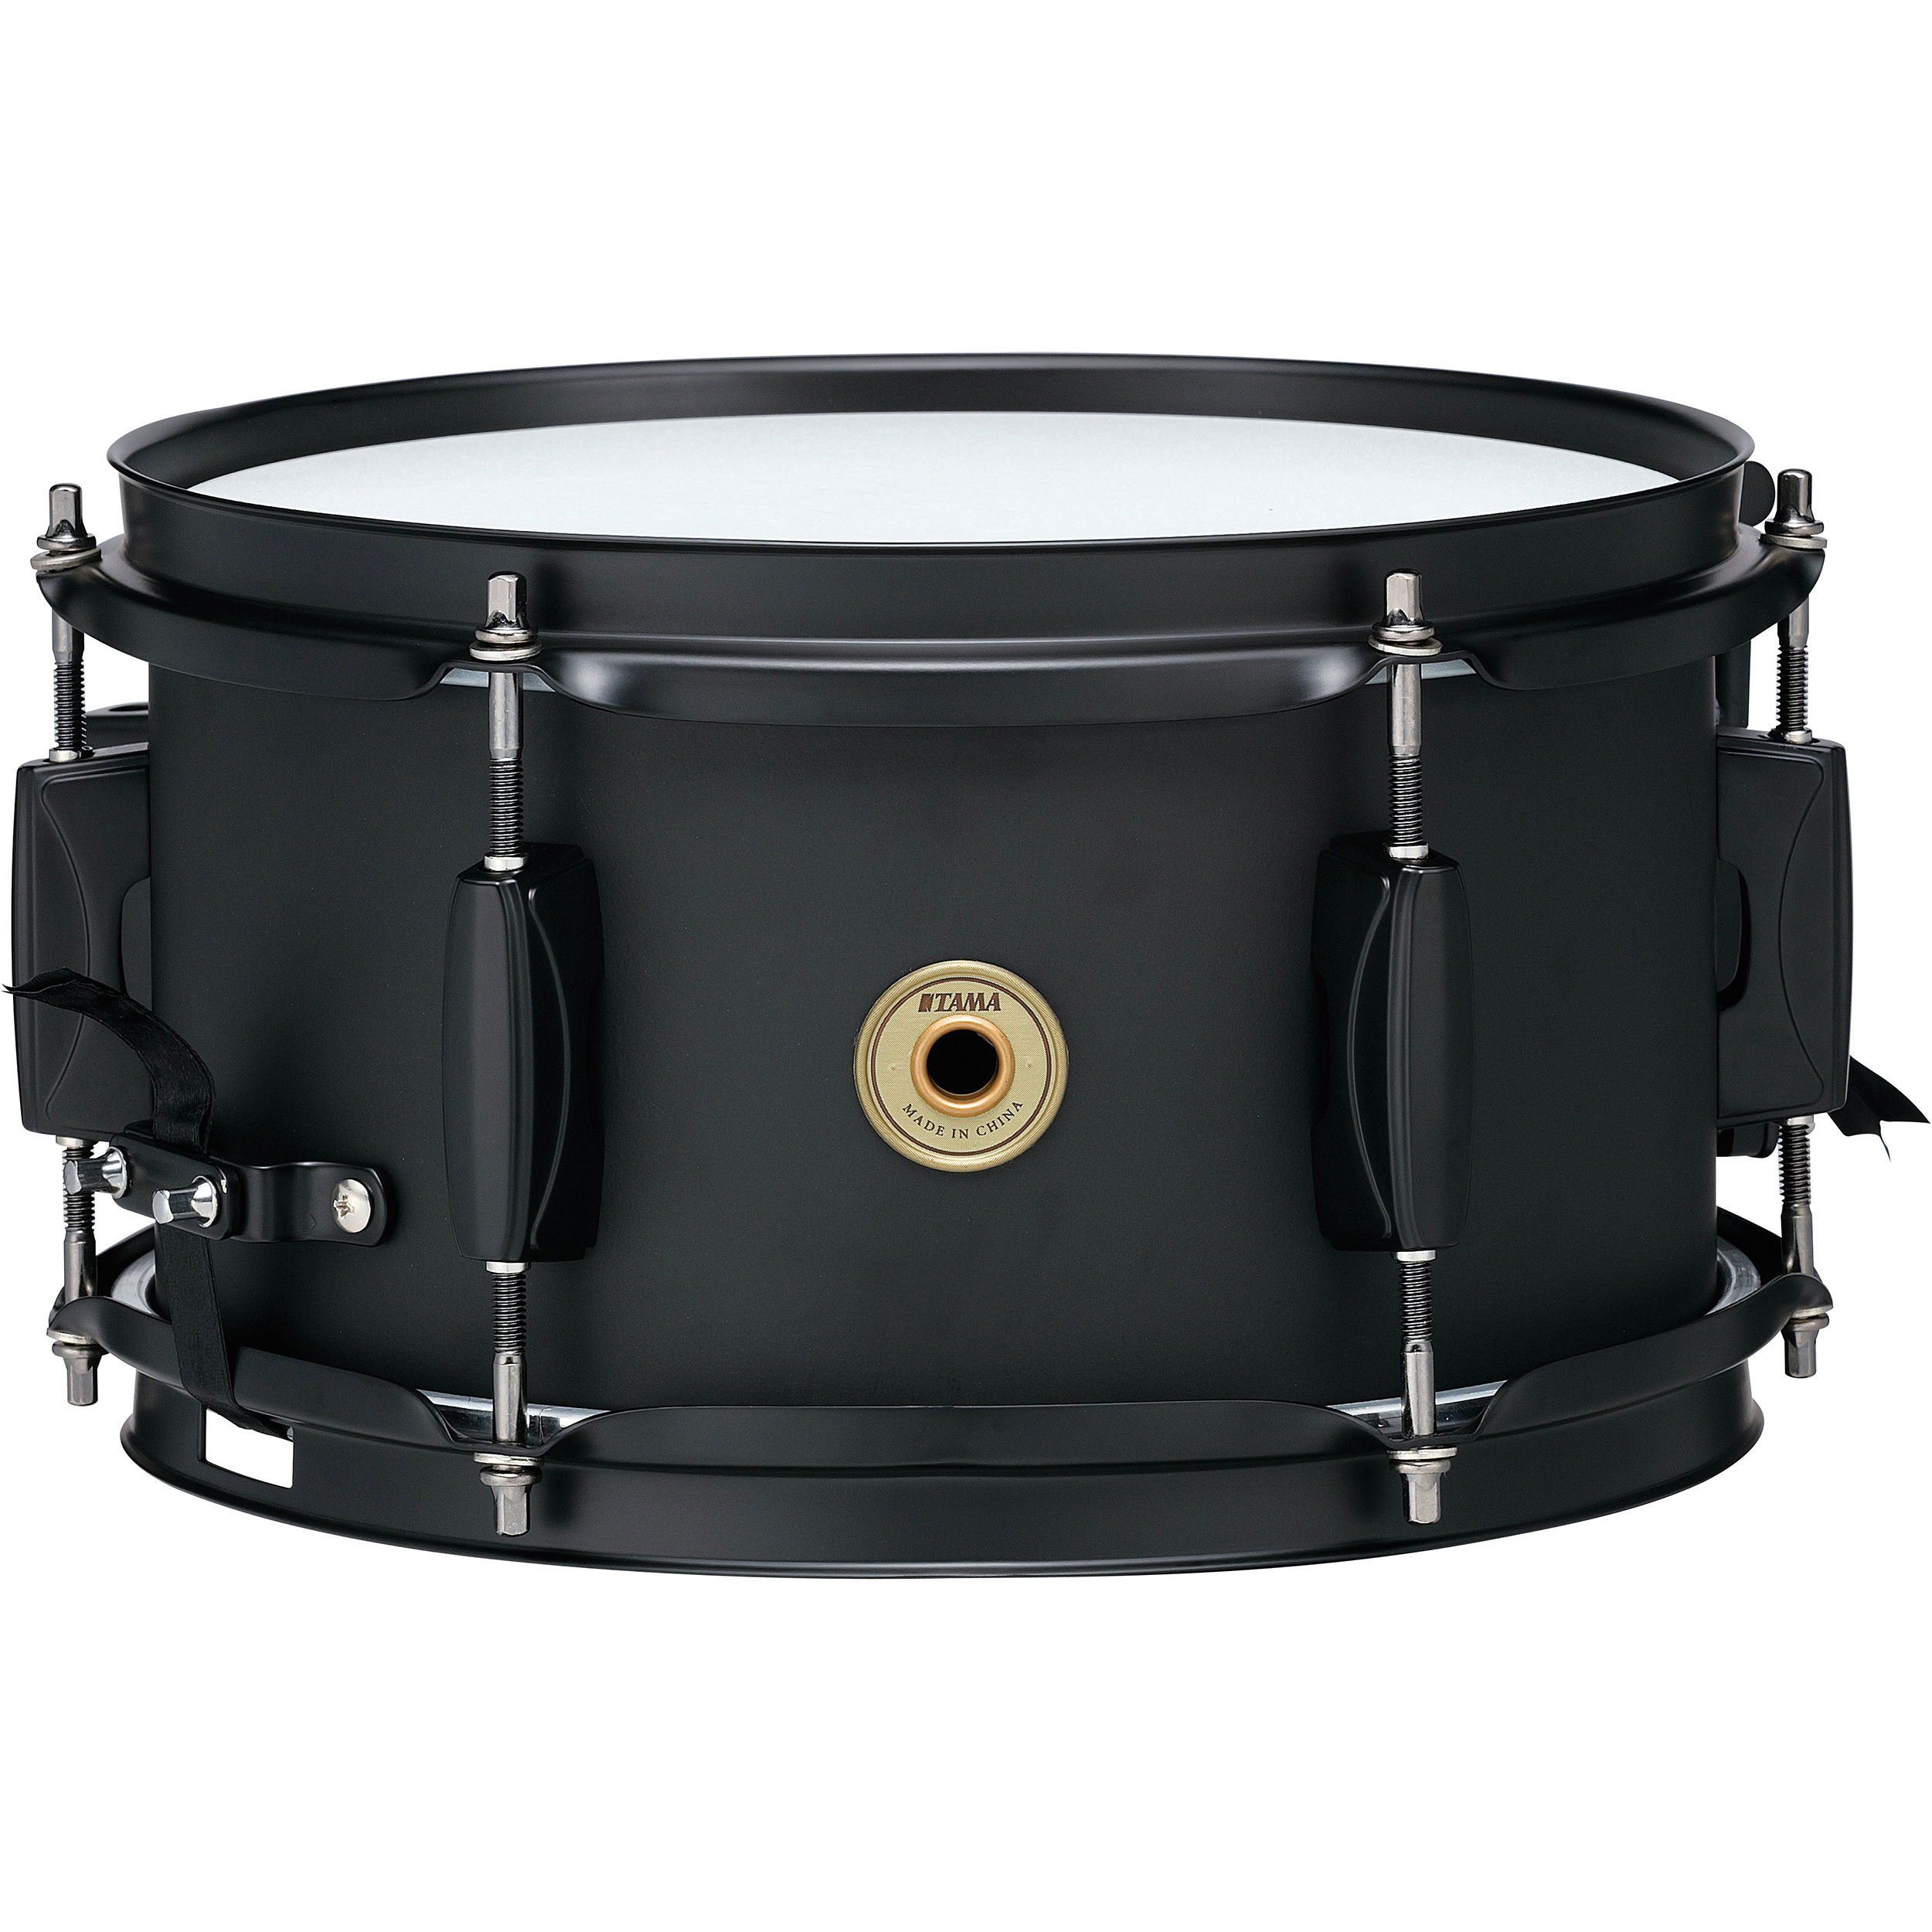 "Tama 5.5"" x 10"" Metalworks Steel Snare Drum in Matte Black with Matching Hardware"